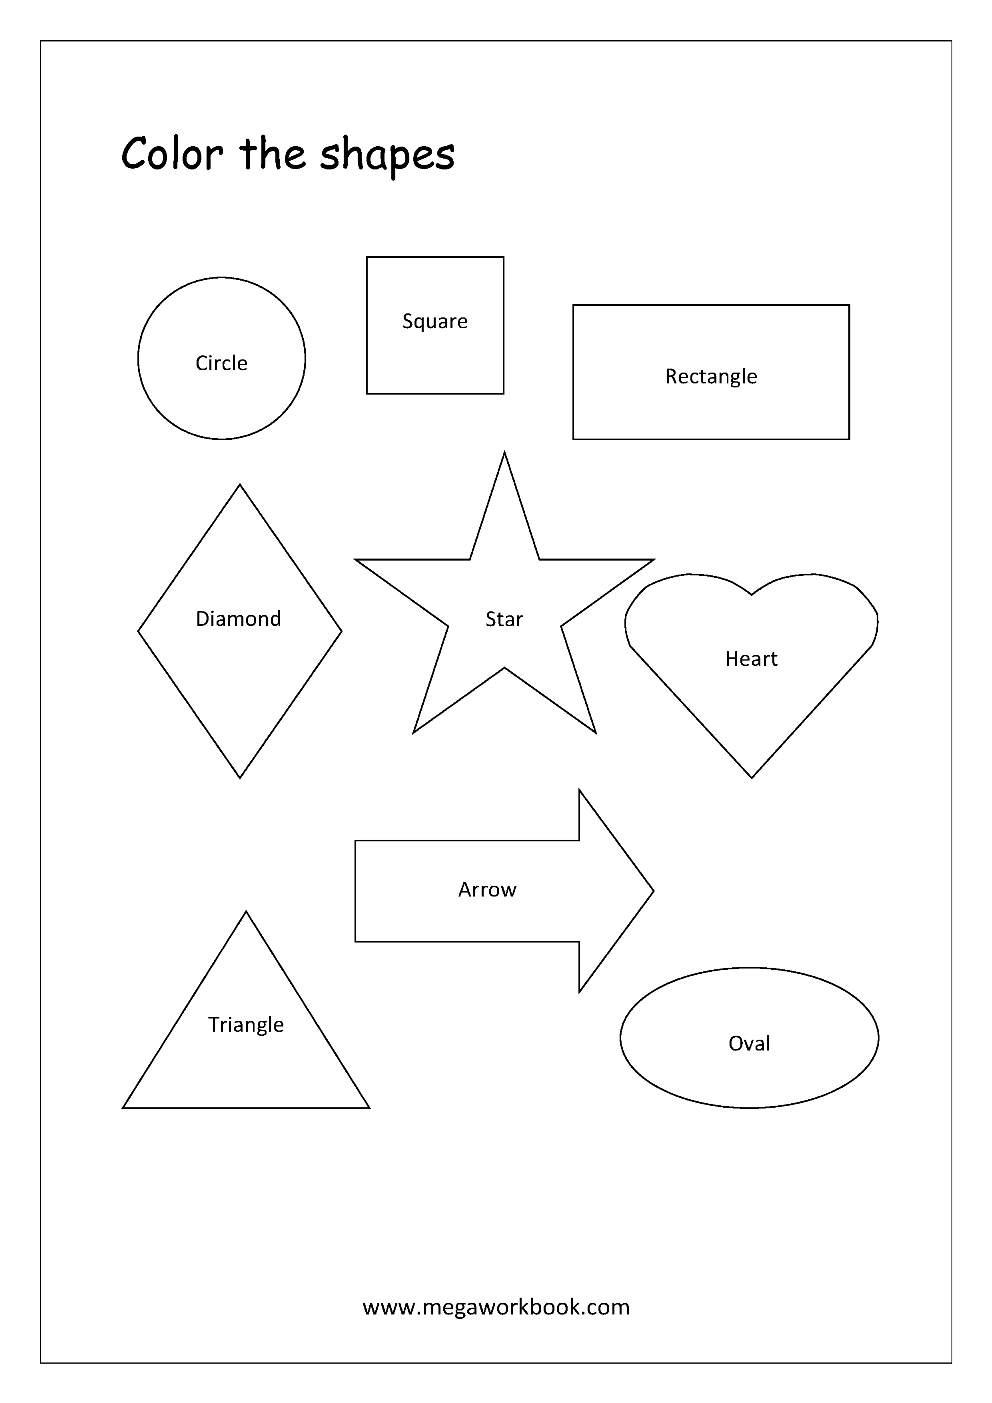 Coloring shapes worksheet - Color The Shapes Circle Square Rectangle Triangle Diamond Star